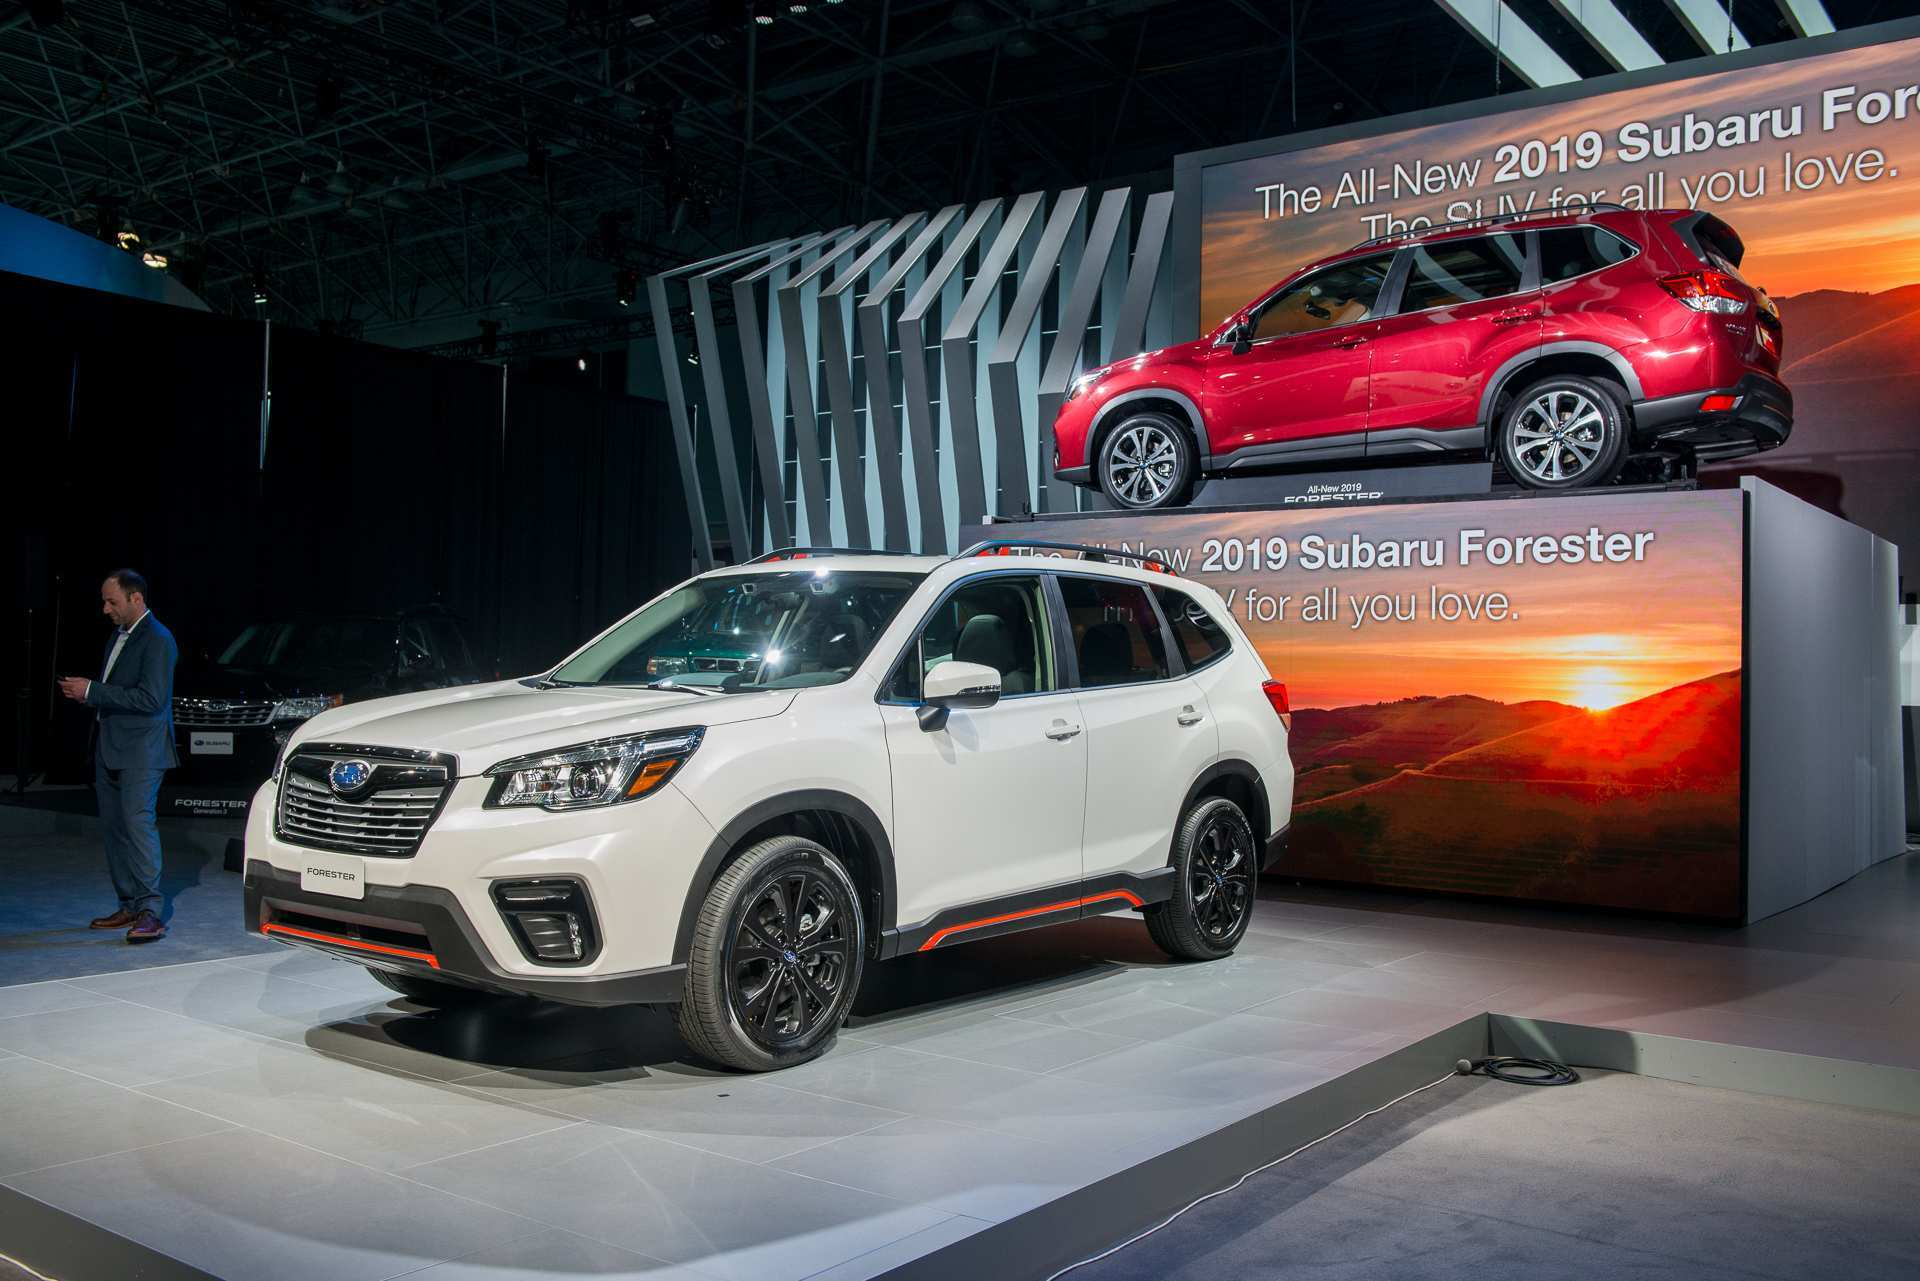 69 Great 2019 Subaru Forester Debut Concept by 2019 Subaru Forester Debut